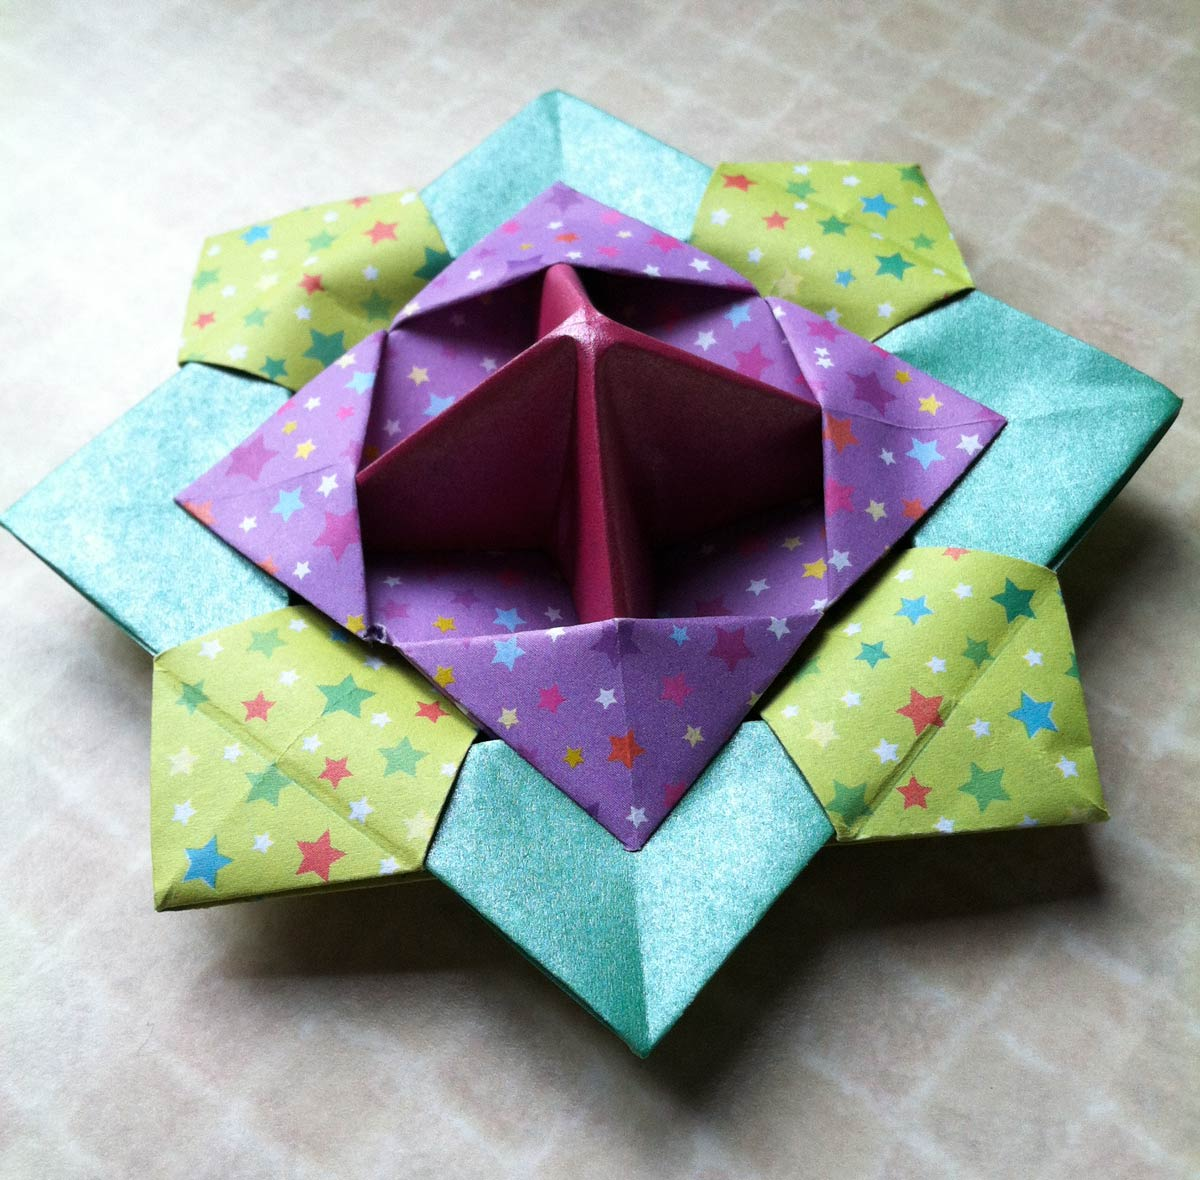 Origami top spinner images origami top spinner origami spinning top origami spinning top source abuse report jeuxipadfo Images